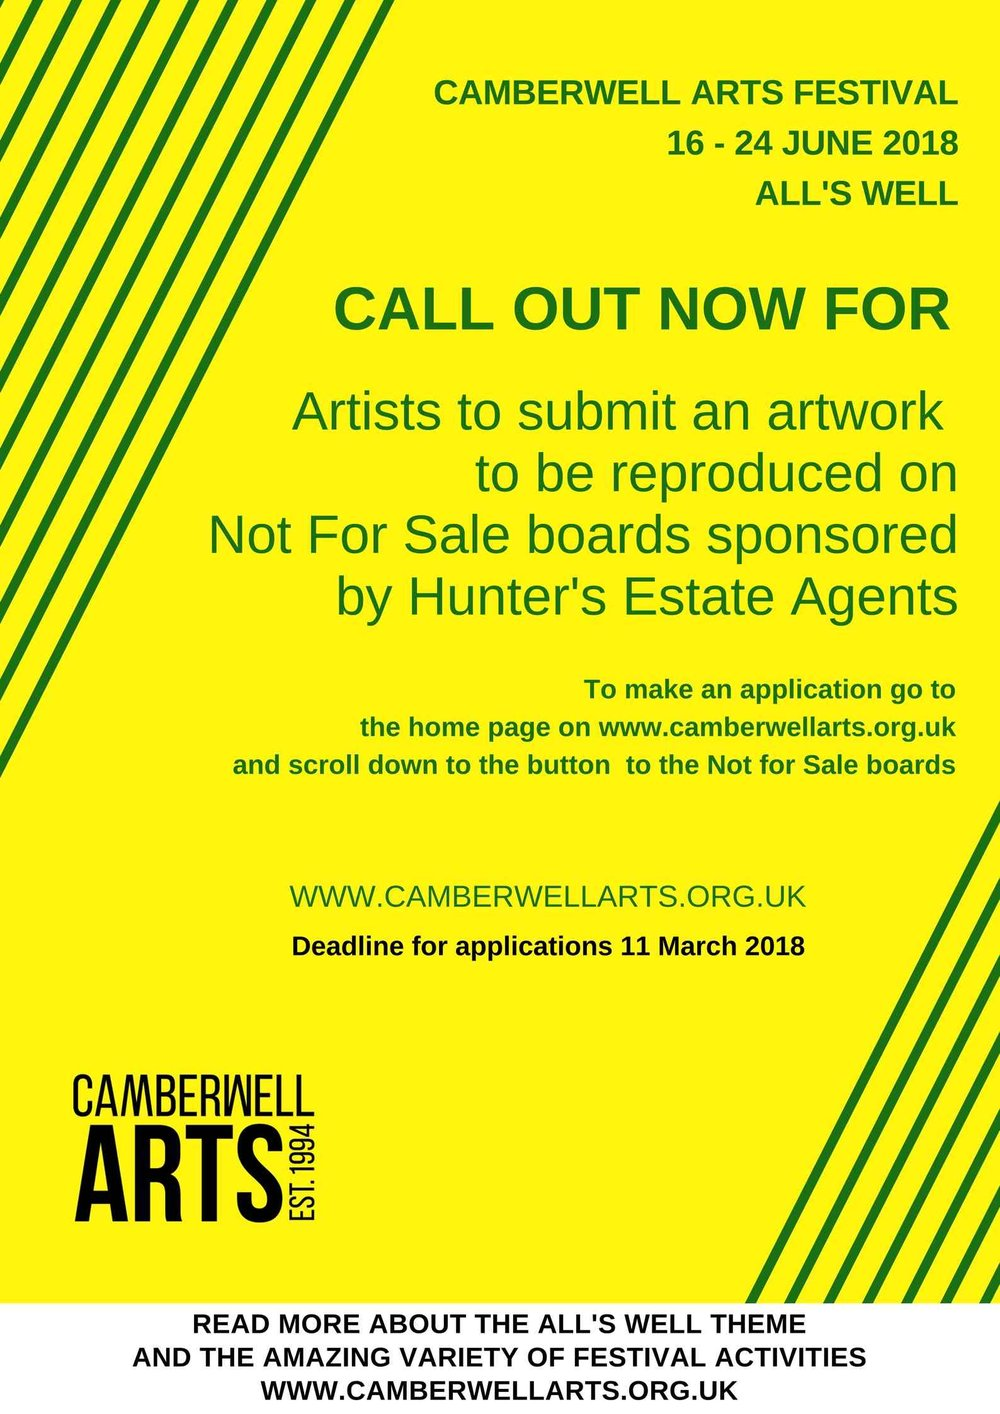 Click  HERE  for the application form to the Not For Sale boards